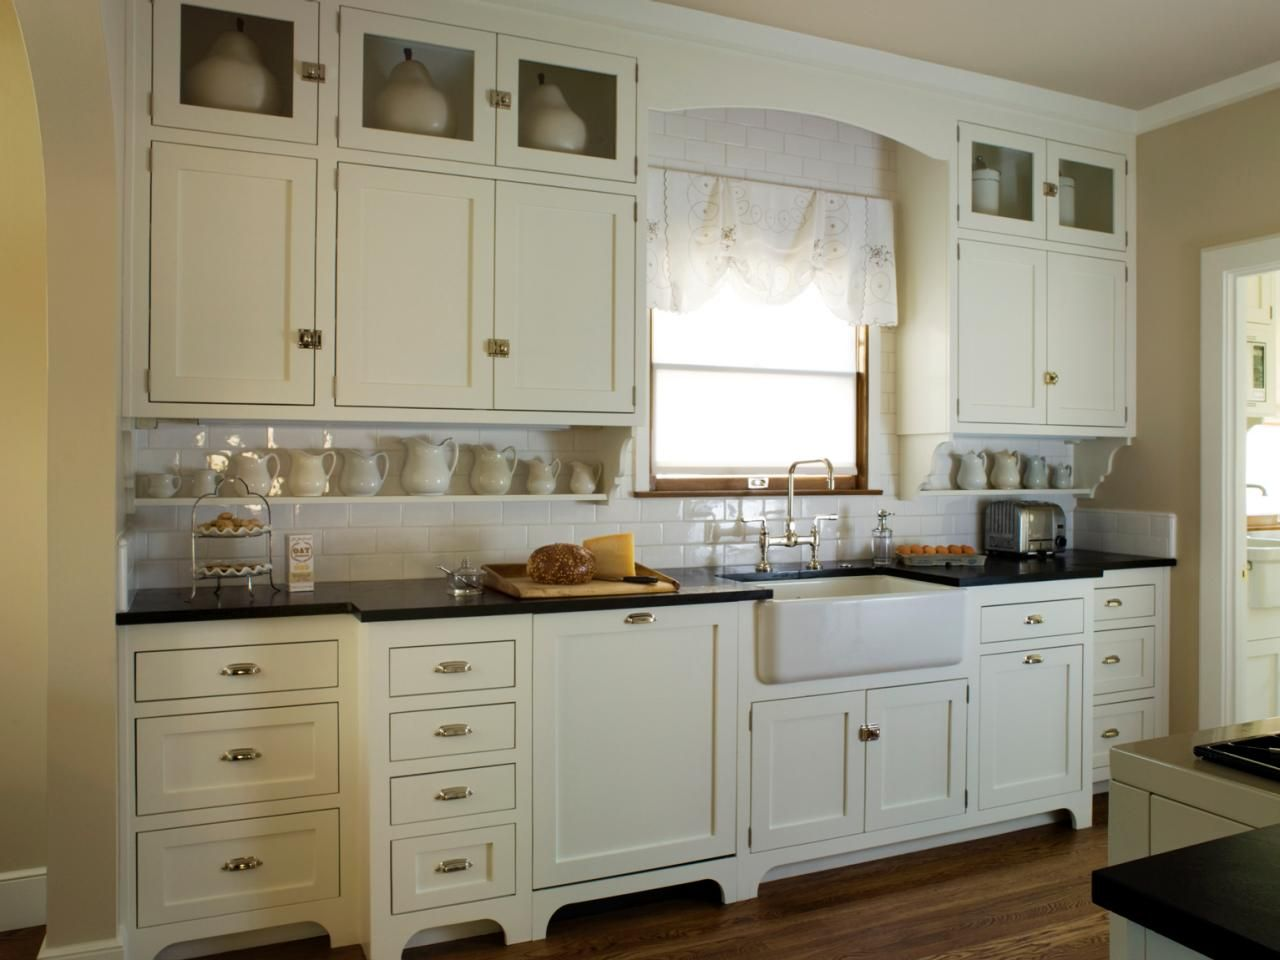 Cottage Kitchen With Antique White Shaker Cabinets Antique White Kitchen Cabinets Antique Kitchen Cabinets Cottage Style Kitchen